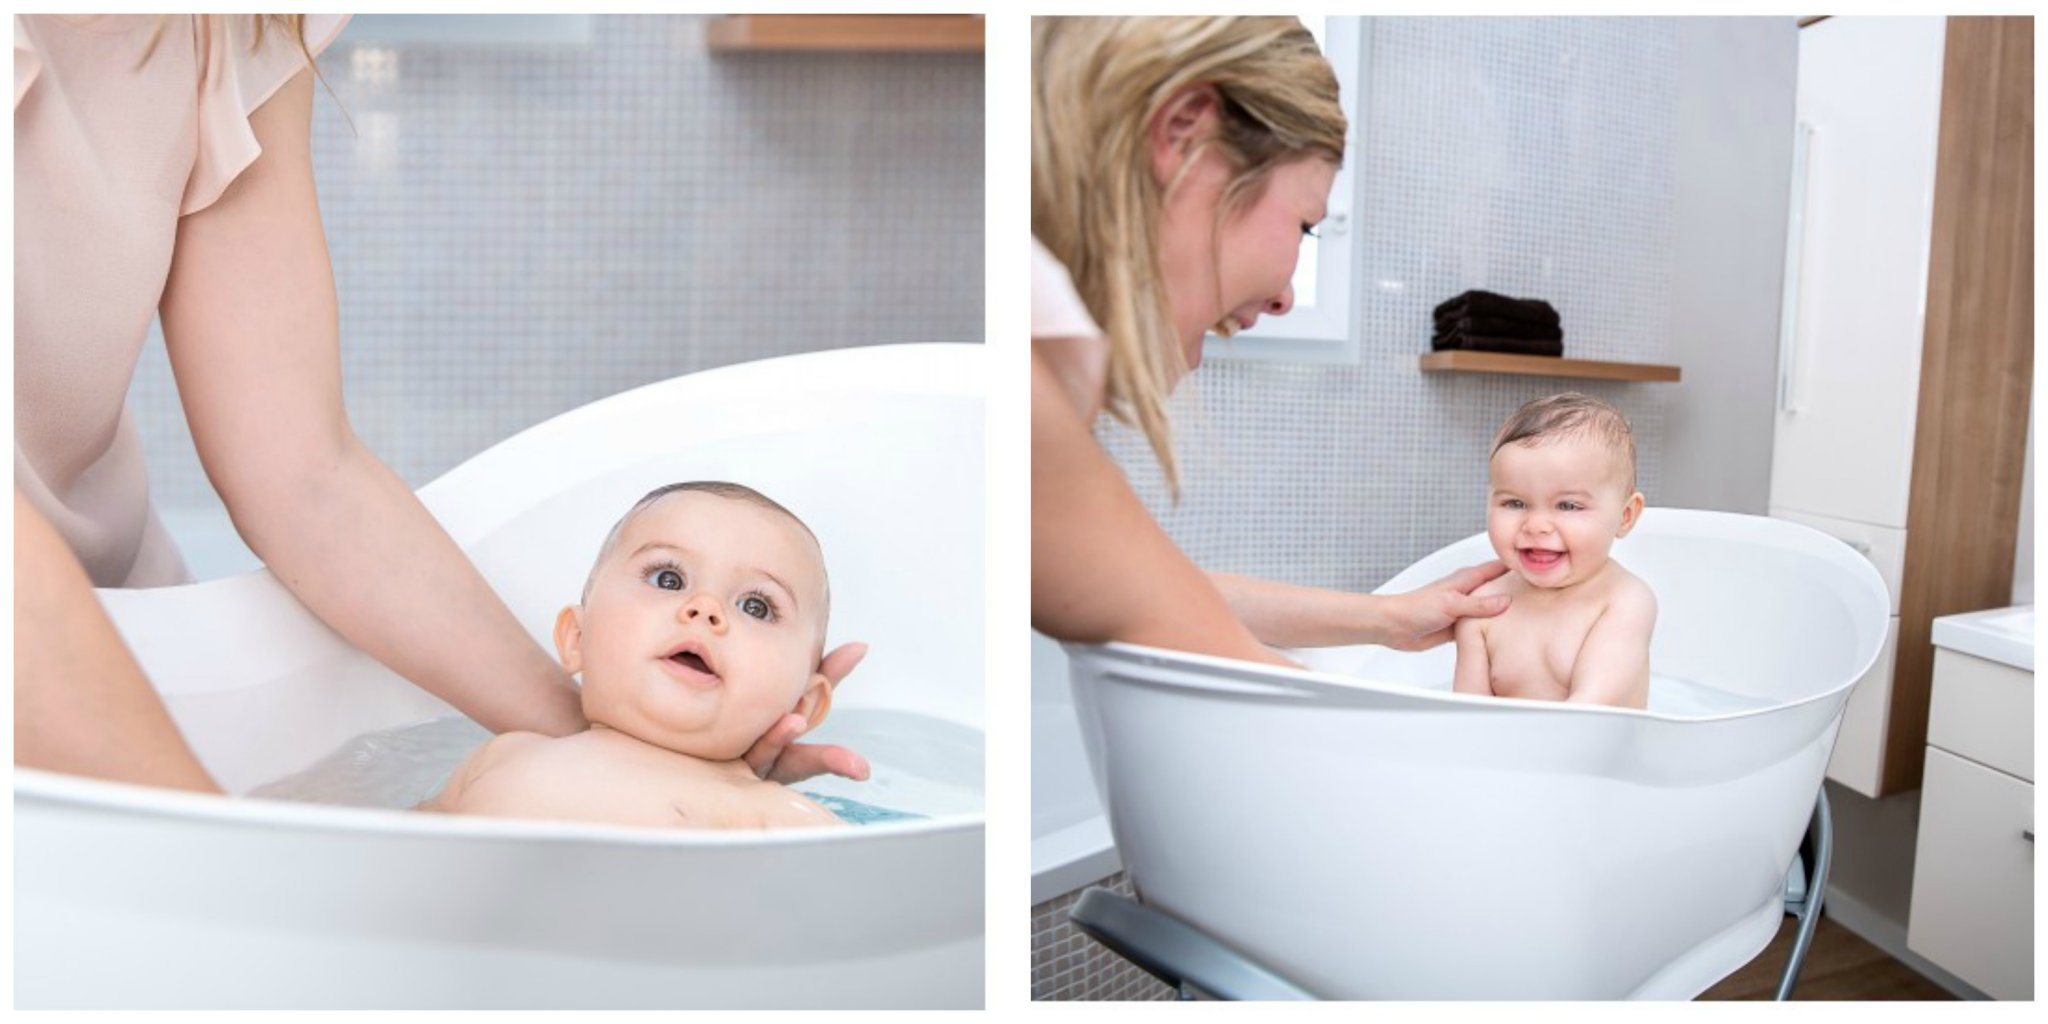 How to bathe two Babies - Love from Mim